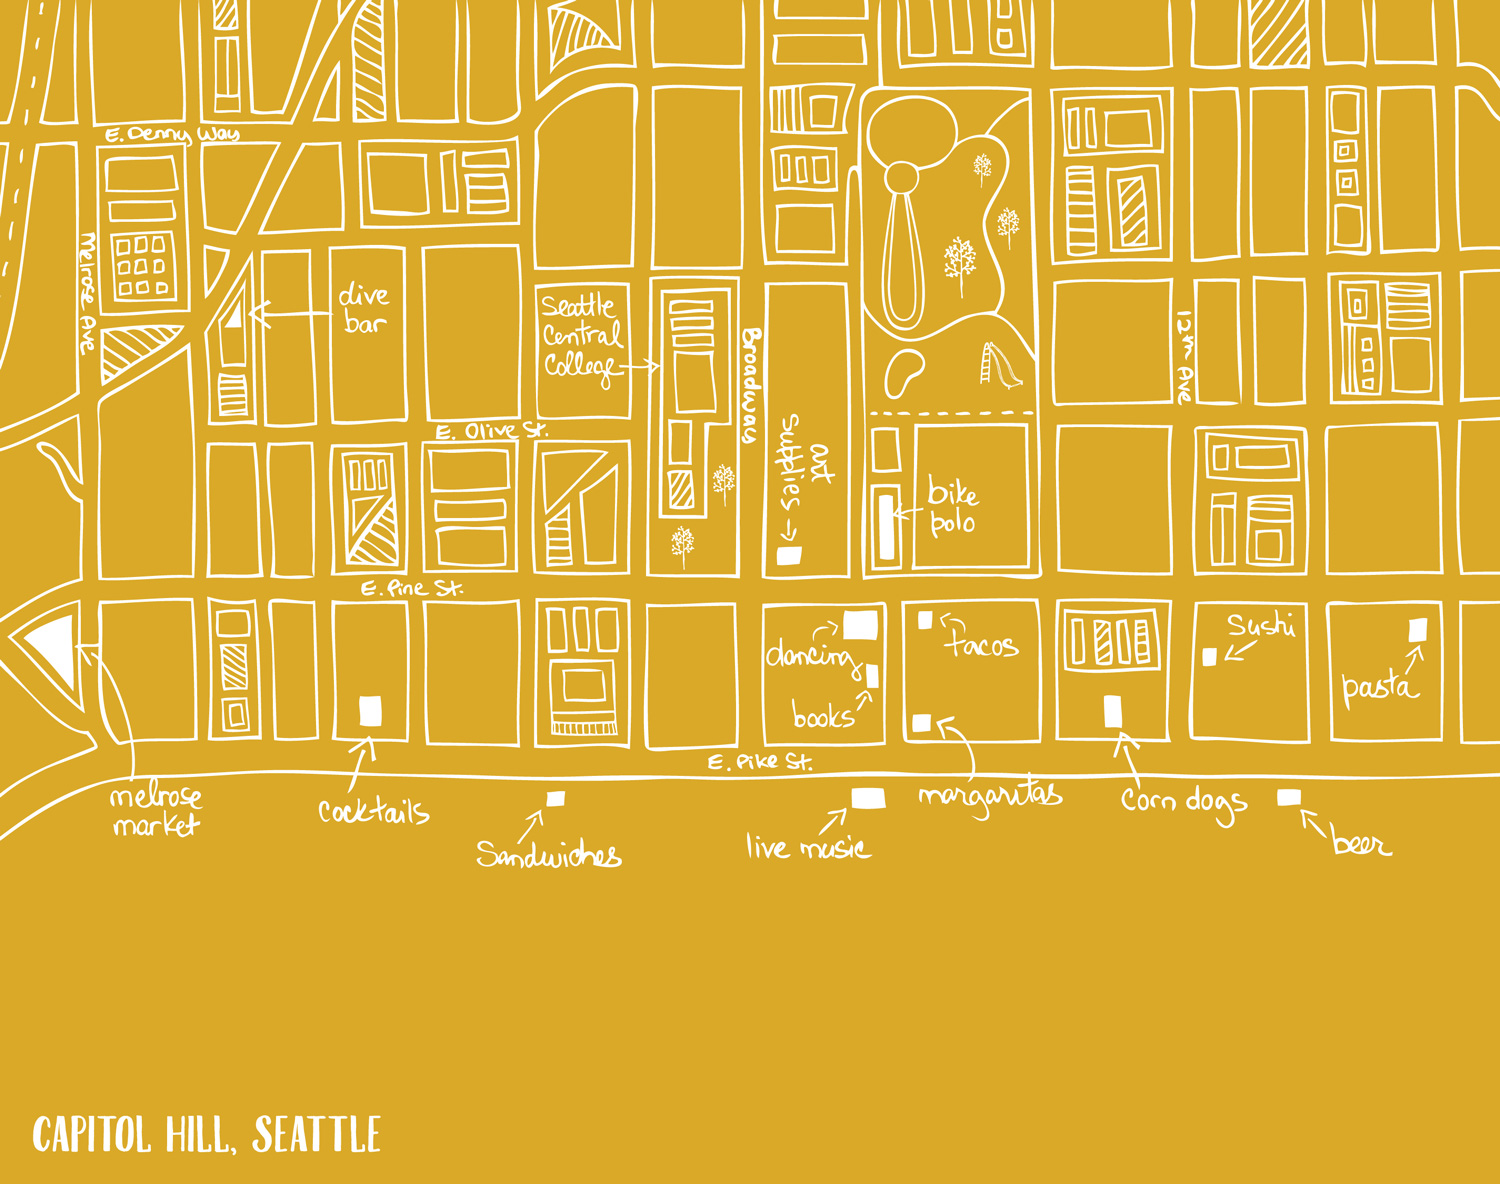 Map of Capitol Hill neighborhood in Seattle, WA by Laurie Baars